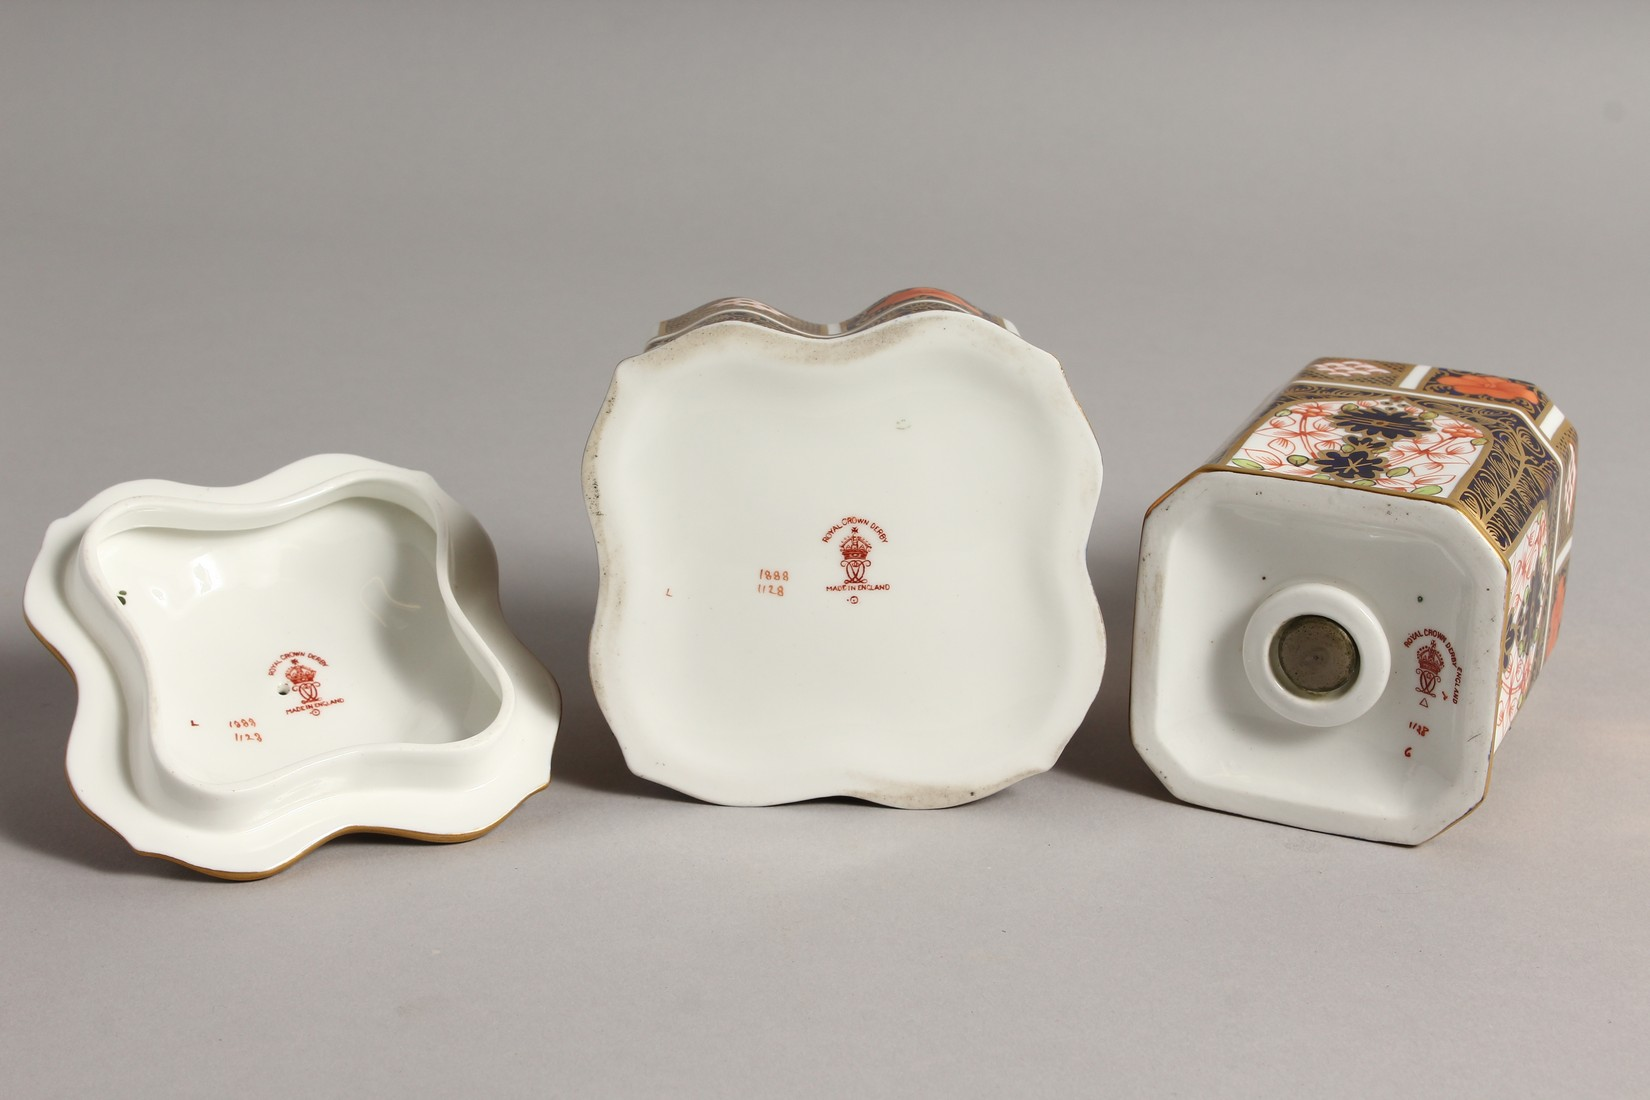 A ROYAL CROWN DERBY JAPAN PATTERN SQUARE SUGAR SIFTER, No. 1128. 6ins high and a SQUARE SUPERB BOX - Image 7 of 10